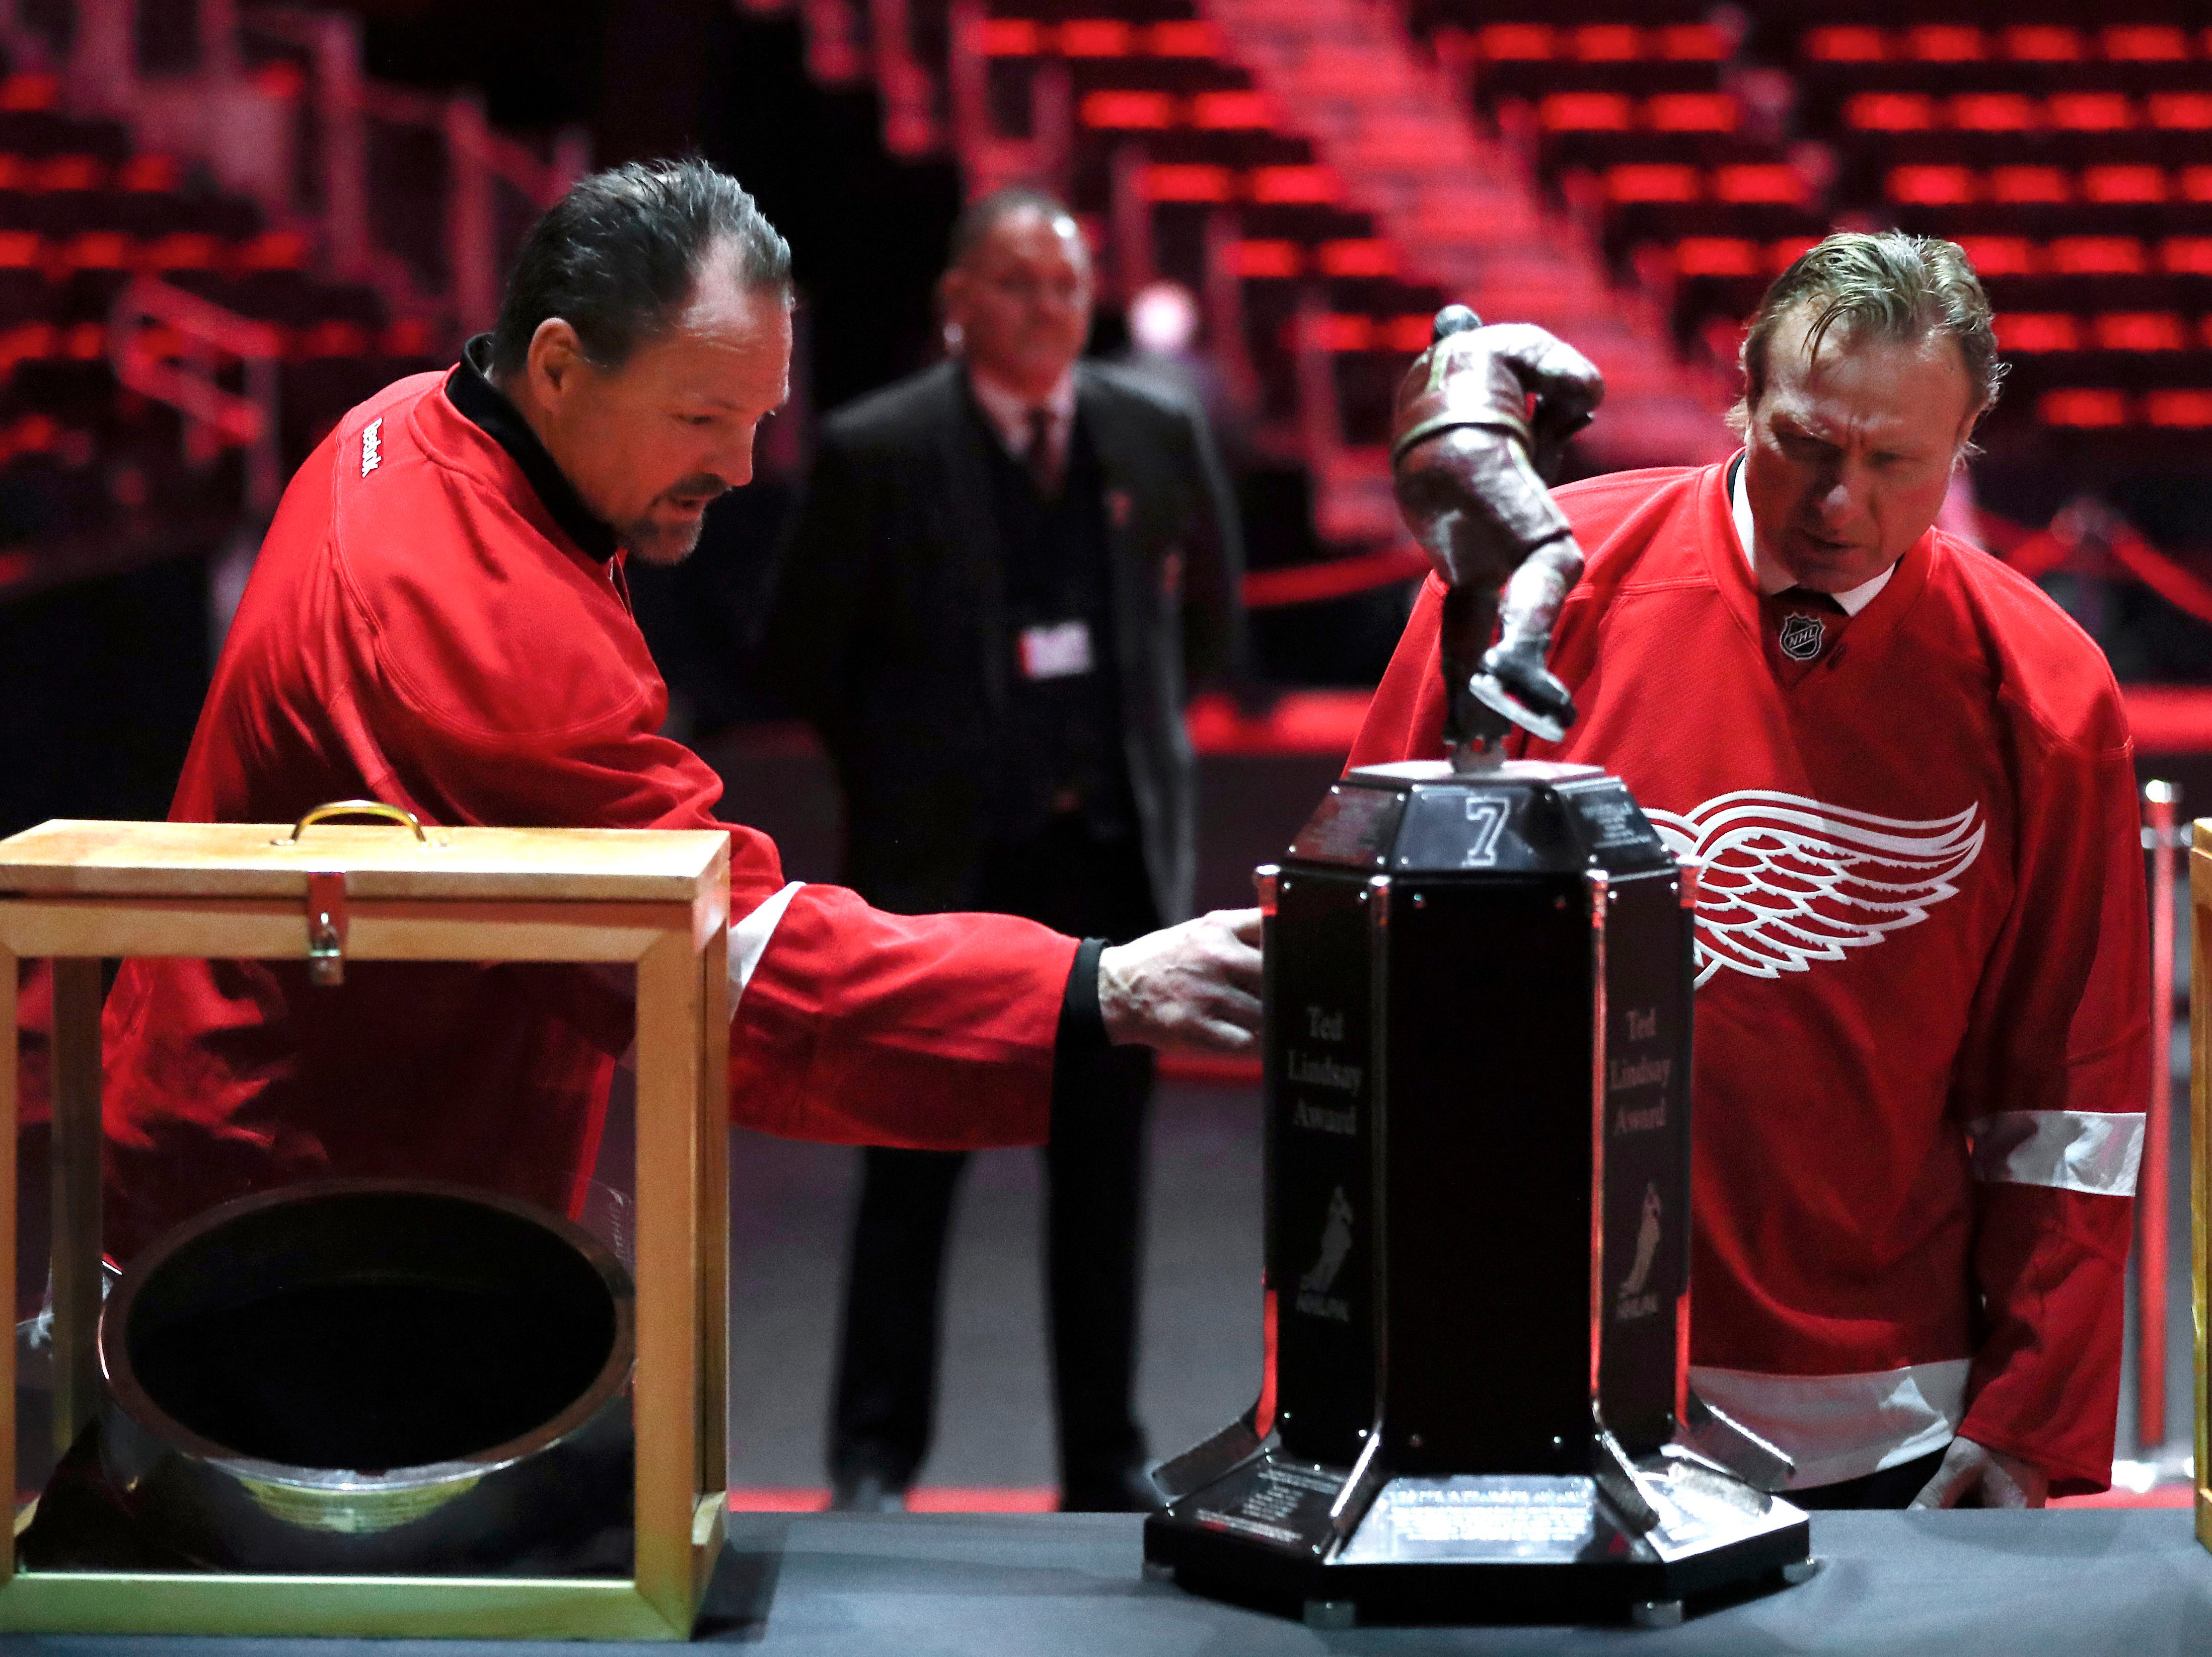 Former Detroit Red Wings players Joe Socur and Eddie Mio view memorabilia at the public viewing for Ted Lindsay.